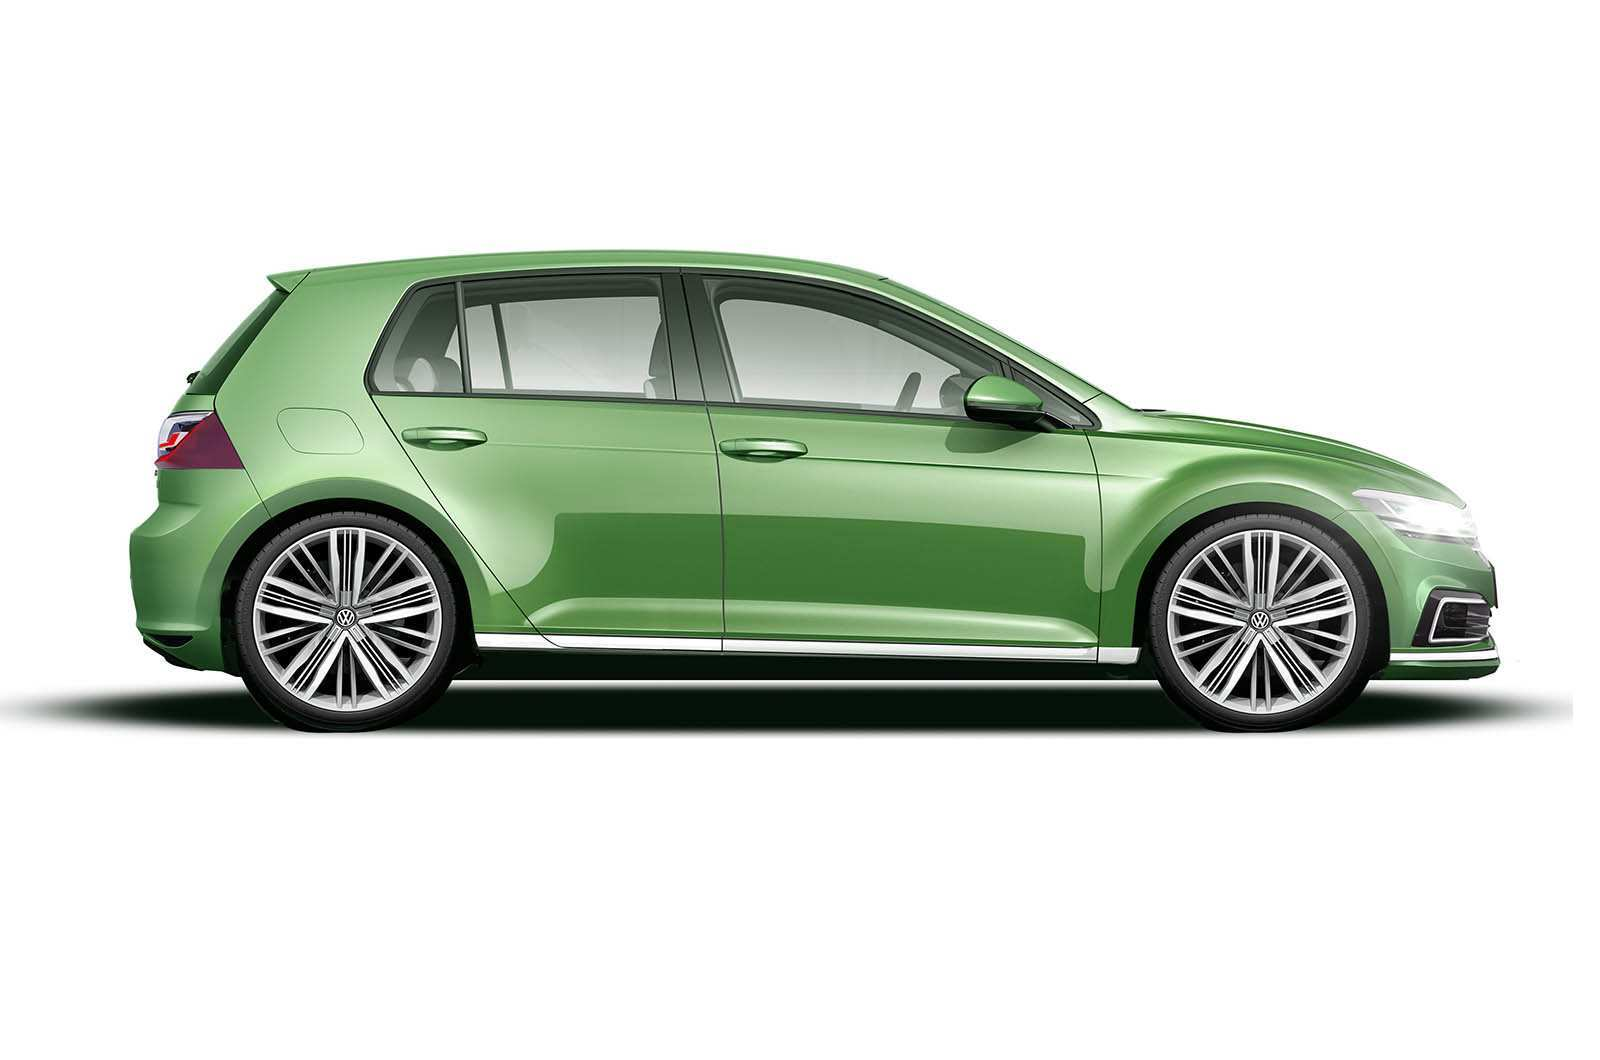 92 Gallery of 2019 Vw Golf Mk8 Redesign and Concept for 2019 Vw Golf Mk8